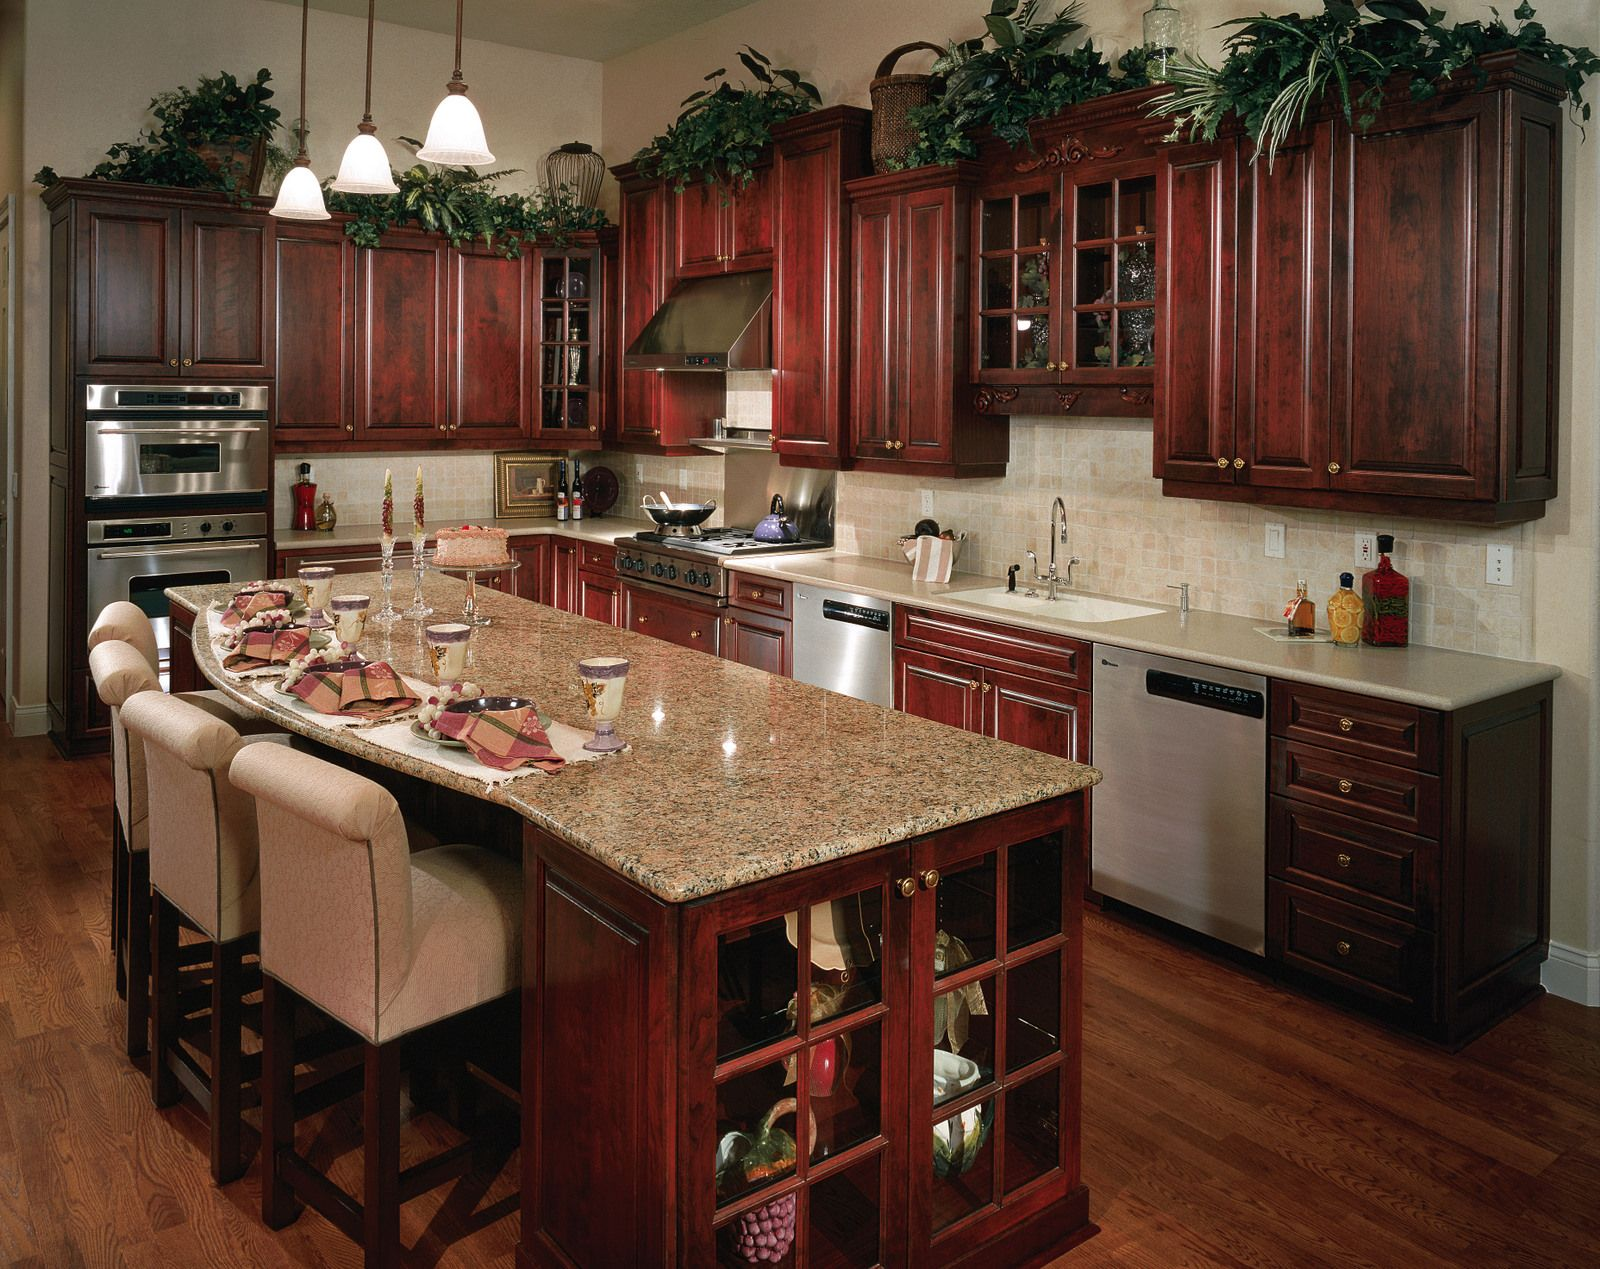 Kitchen designs cherry wood cabinets - Kitchen Color Schemes With Wood Cabinets Dark Floor And Dark Cabinets But With A Hint Of Red